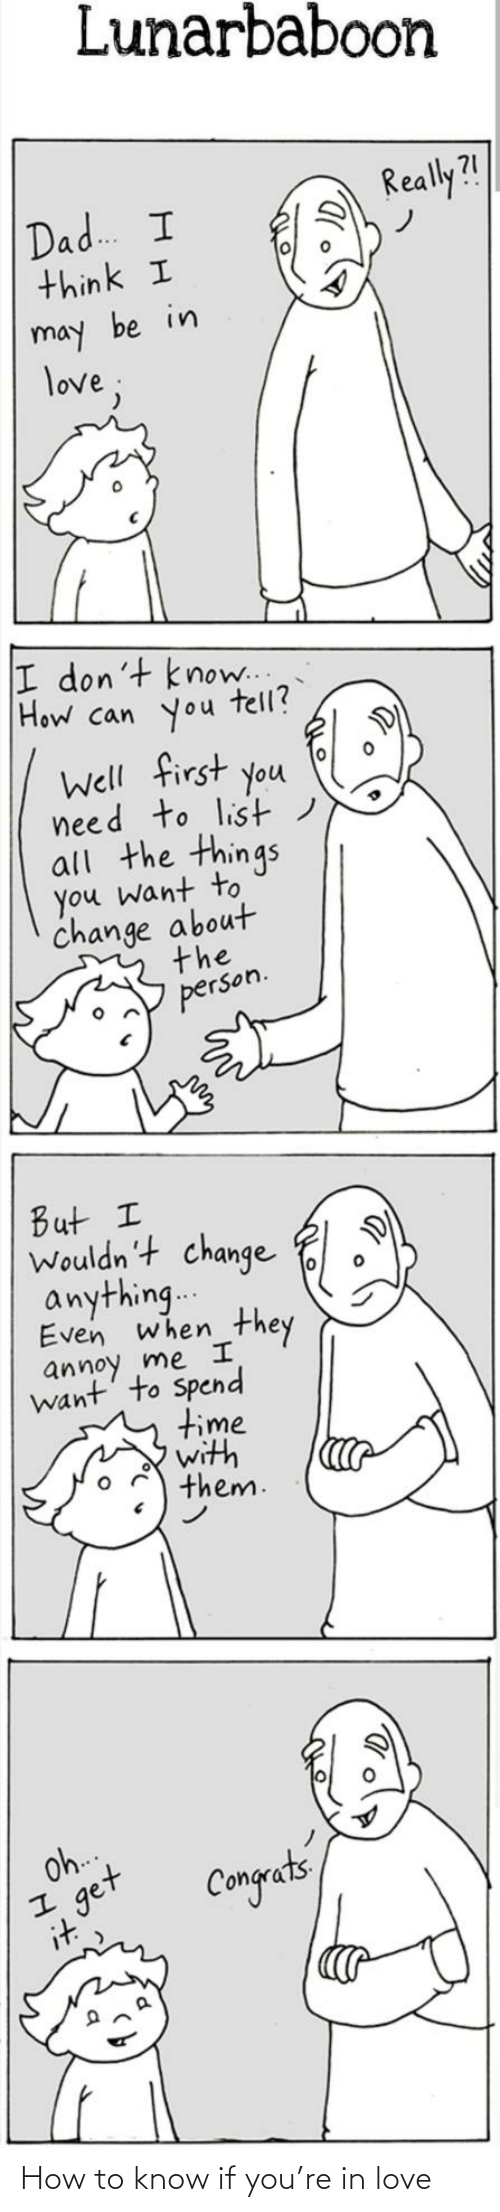 i dont know: Lunarbaboon  Really?!  Dad. I  think I  may be in  love;  I don't know..  How can you  tell?  Well first you  need to list)  all the things  you want to  change about  the  person.  But I  Wouldn't change  anything..  Even when  they  annoy me I  want' to Spend  time  with  them.  Oh.  get  it  Congets How to know if you're in love